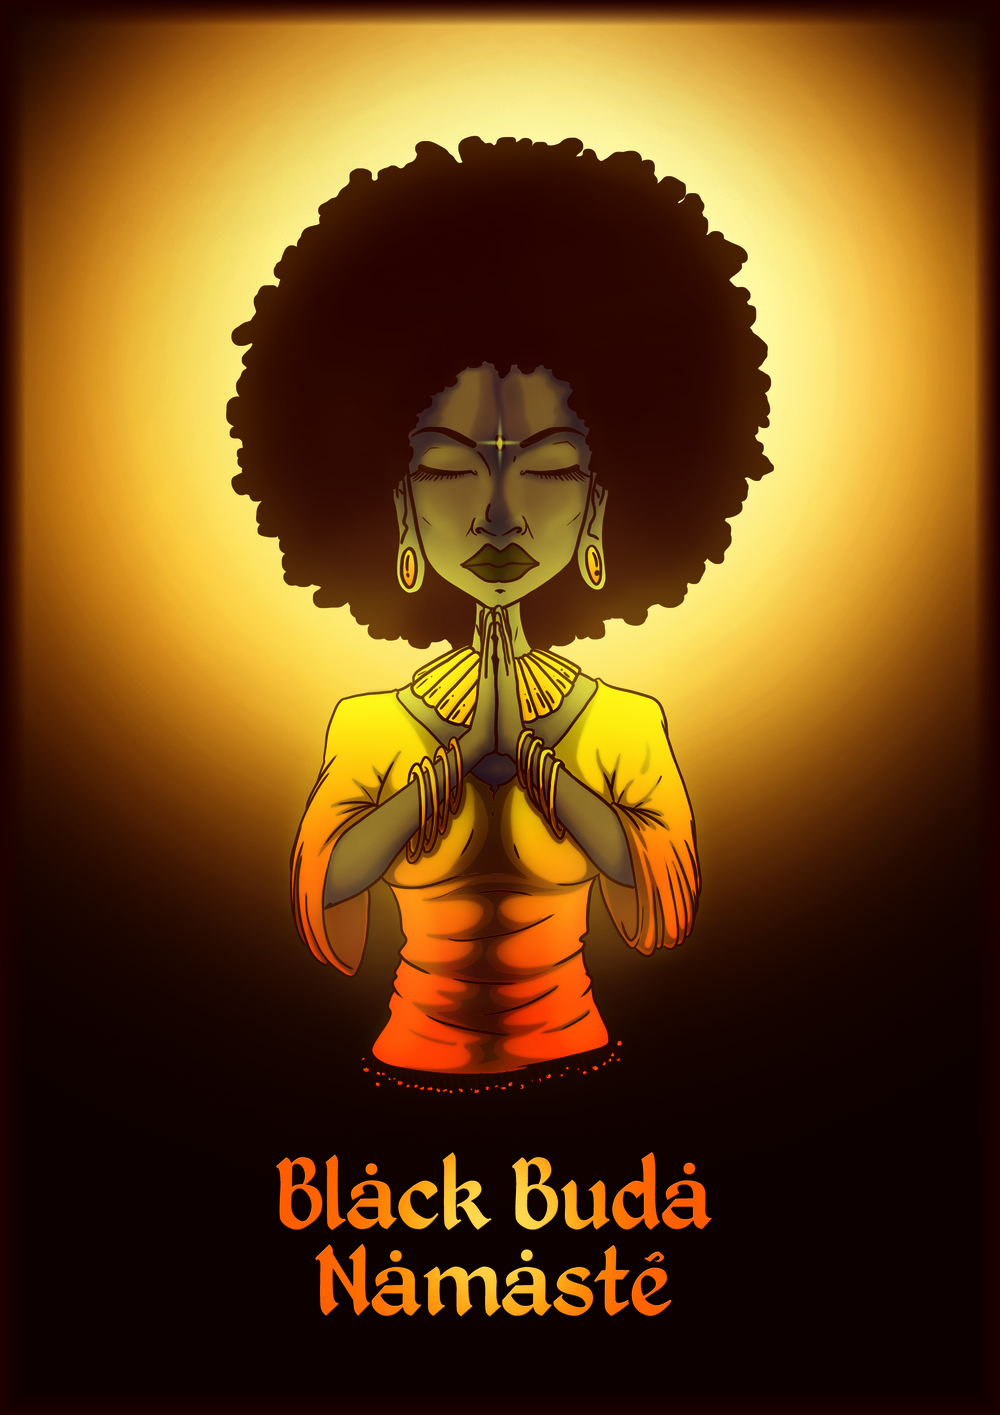 BlackBuda Ilustra.jpg